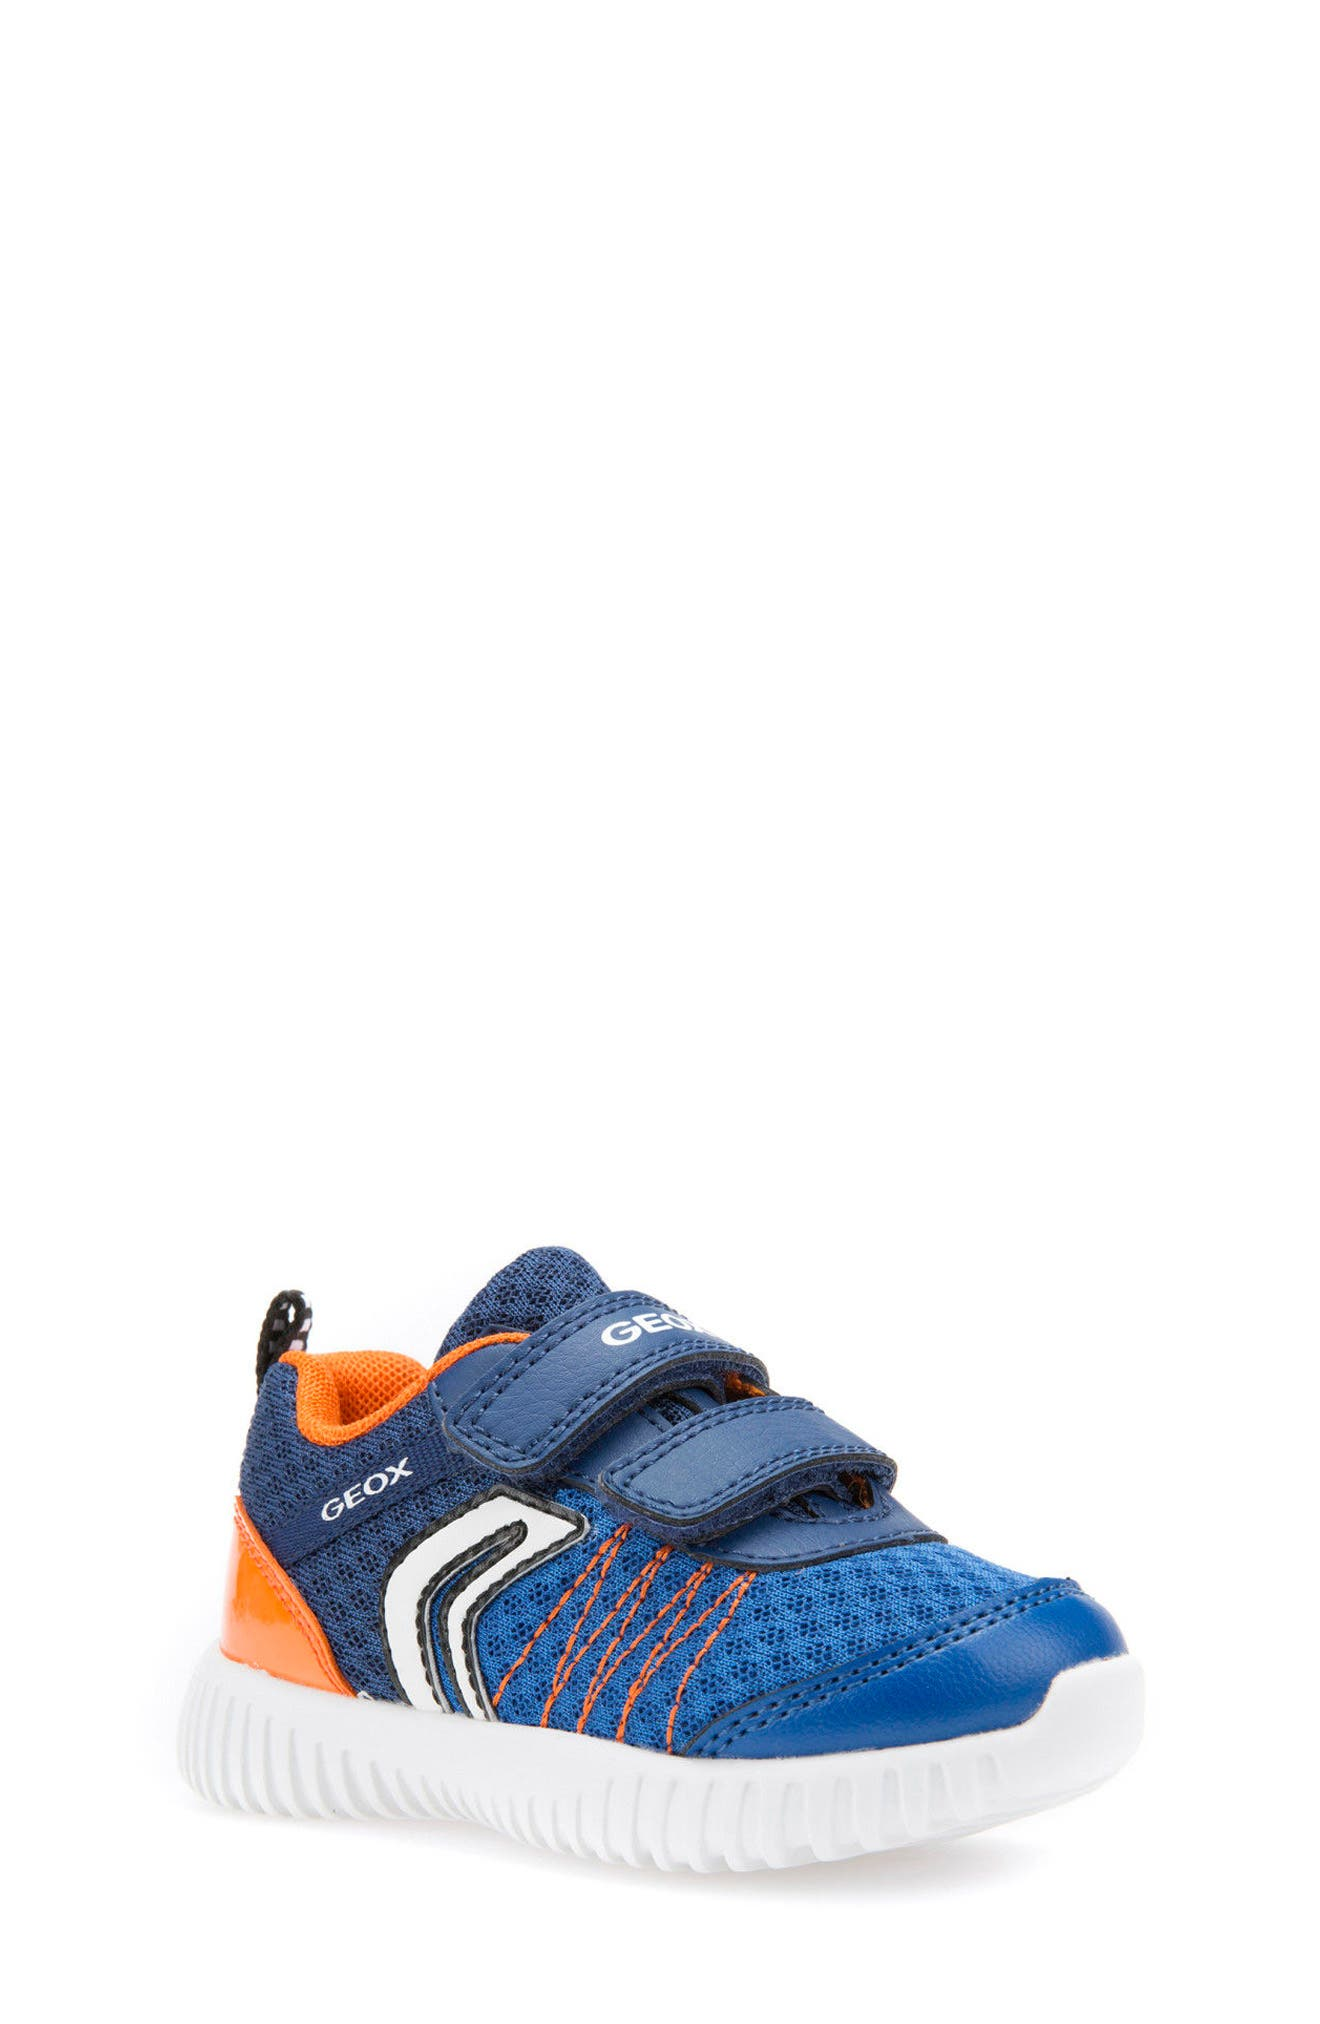 Waviness Waterproof Sneaker,                             Main thumbnail 1, color,                             NAVY/ ORANGE